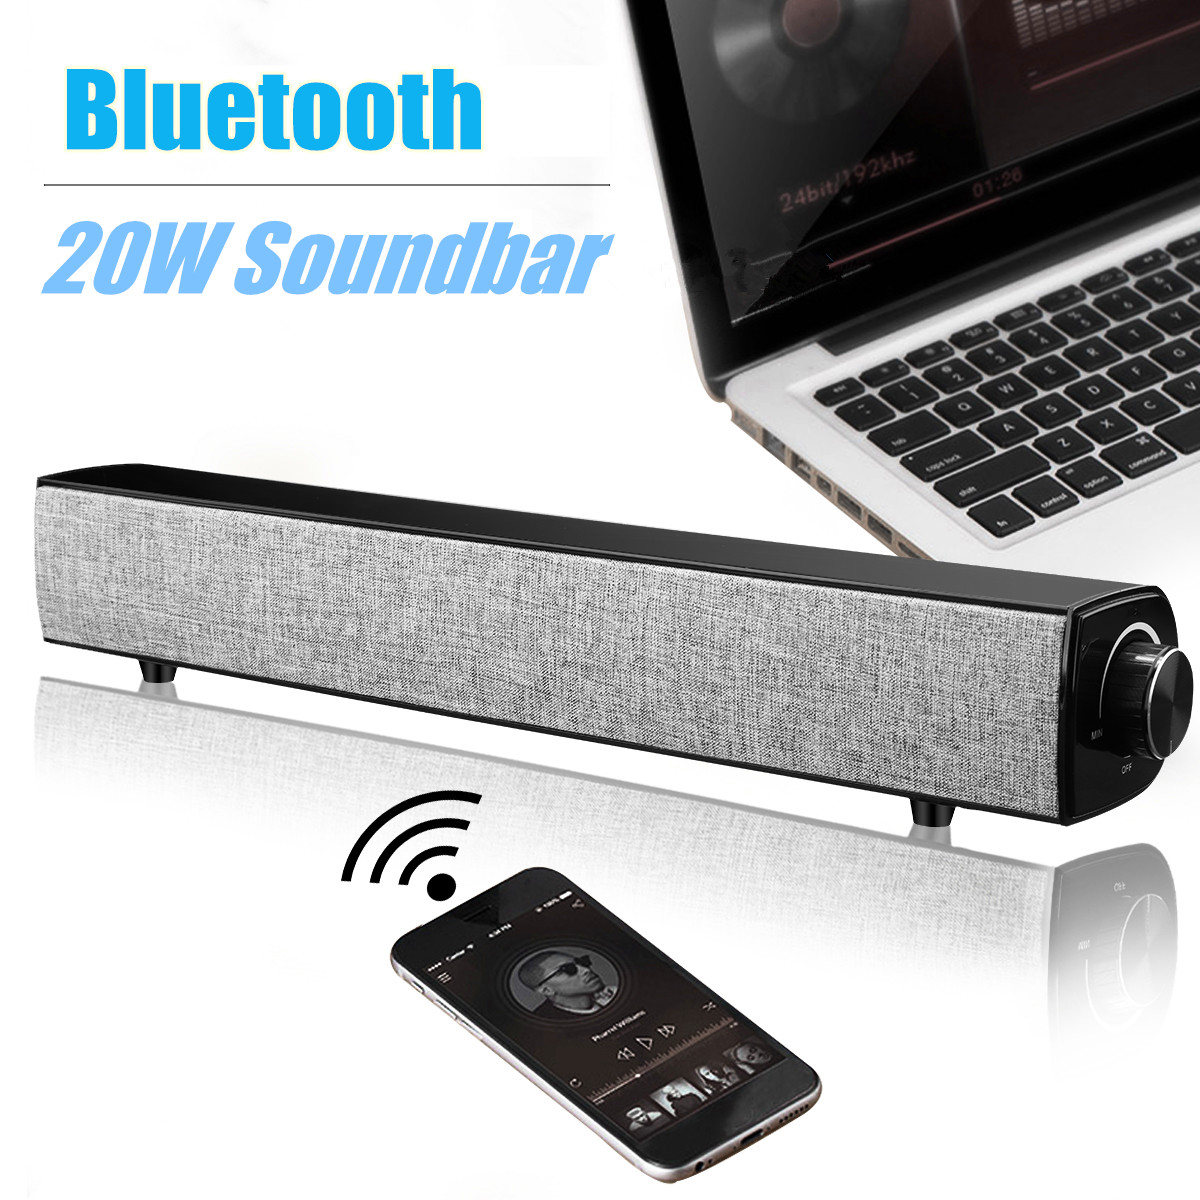 20W Hifi Bluetooth Speaker Soundbar 4000Mah Wireless Bass Stereo Family Sound Bar Subwoofer With Mic USB Aux For Computer